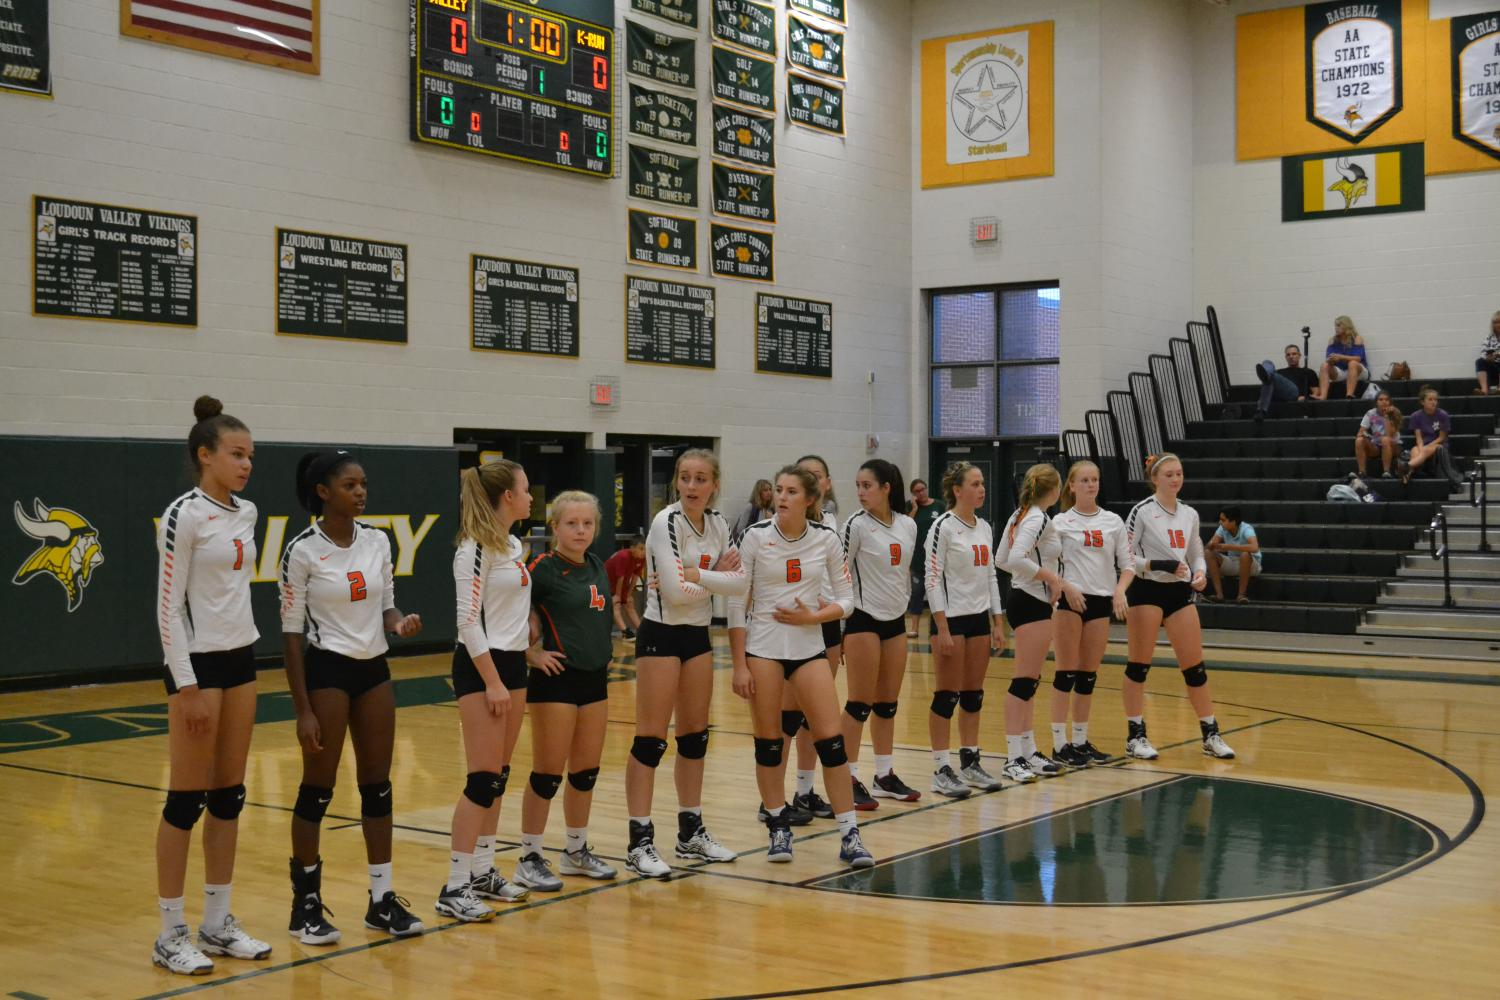 Girls Volleyball lines up before a match.